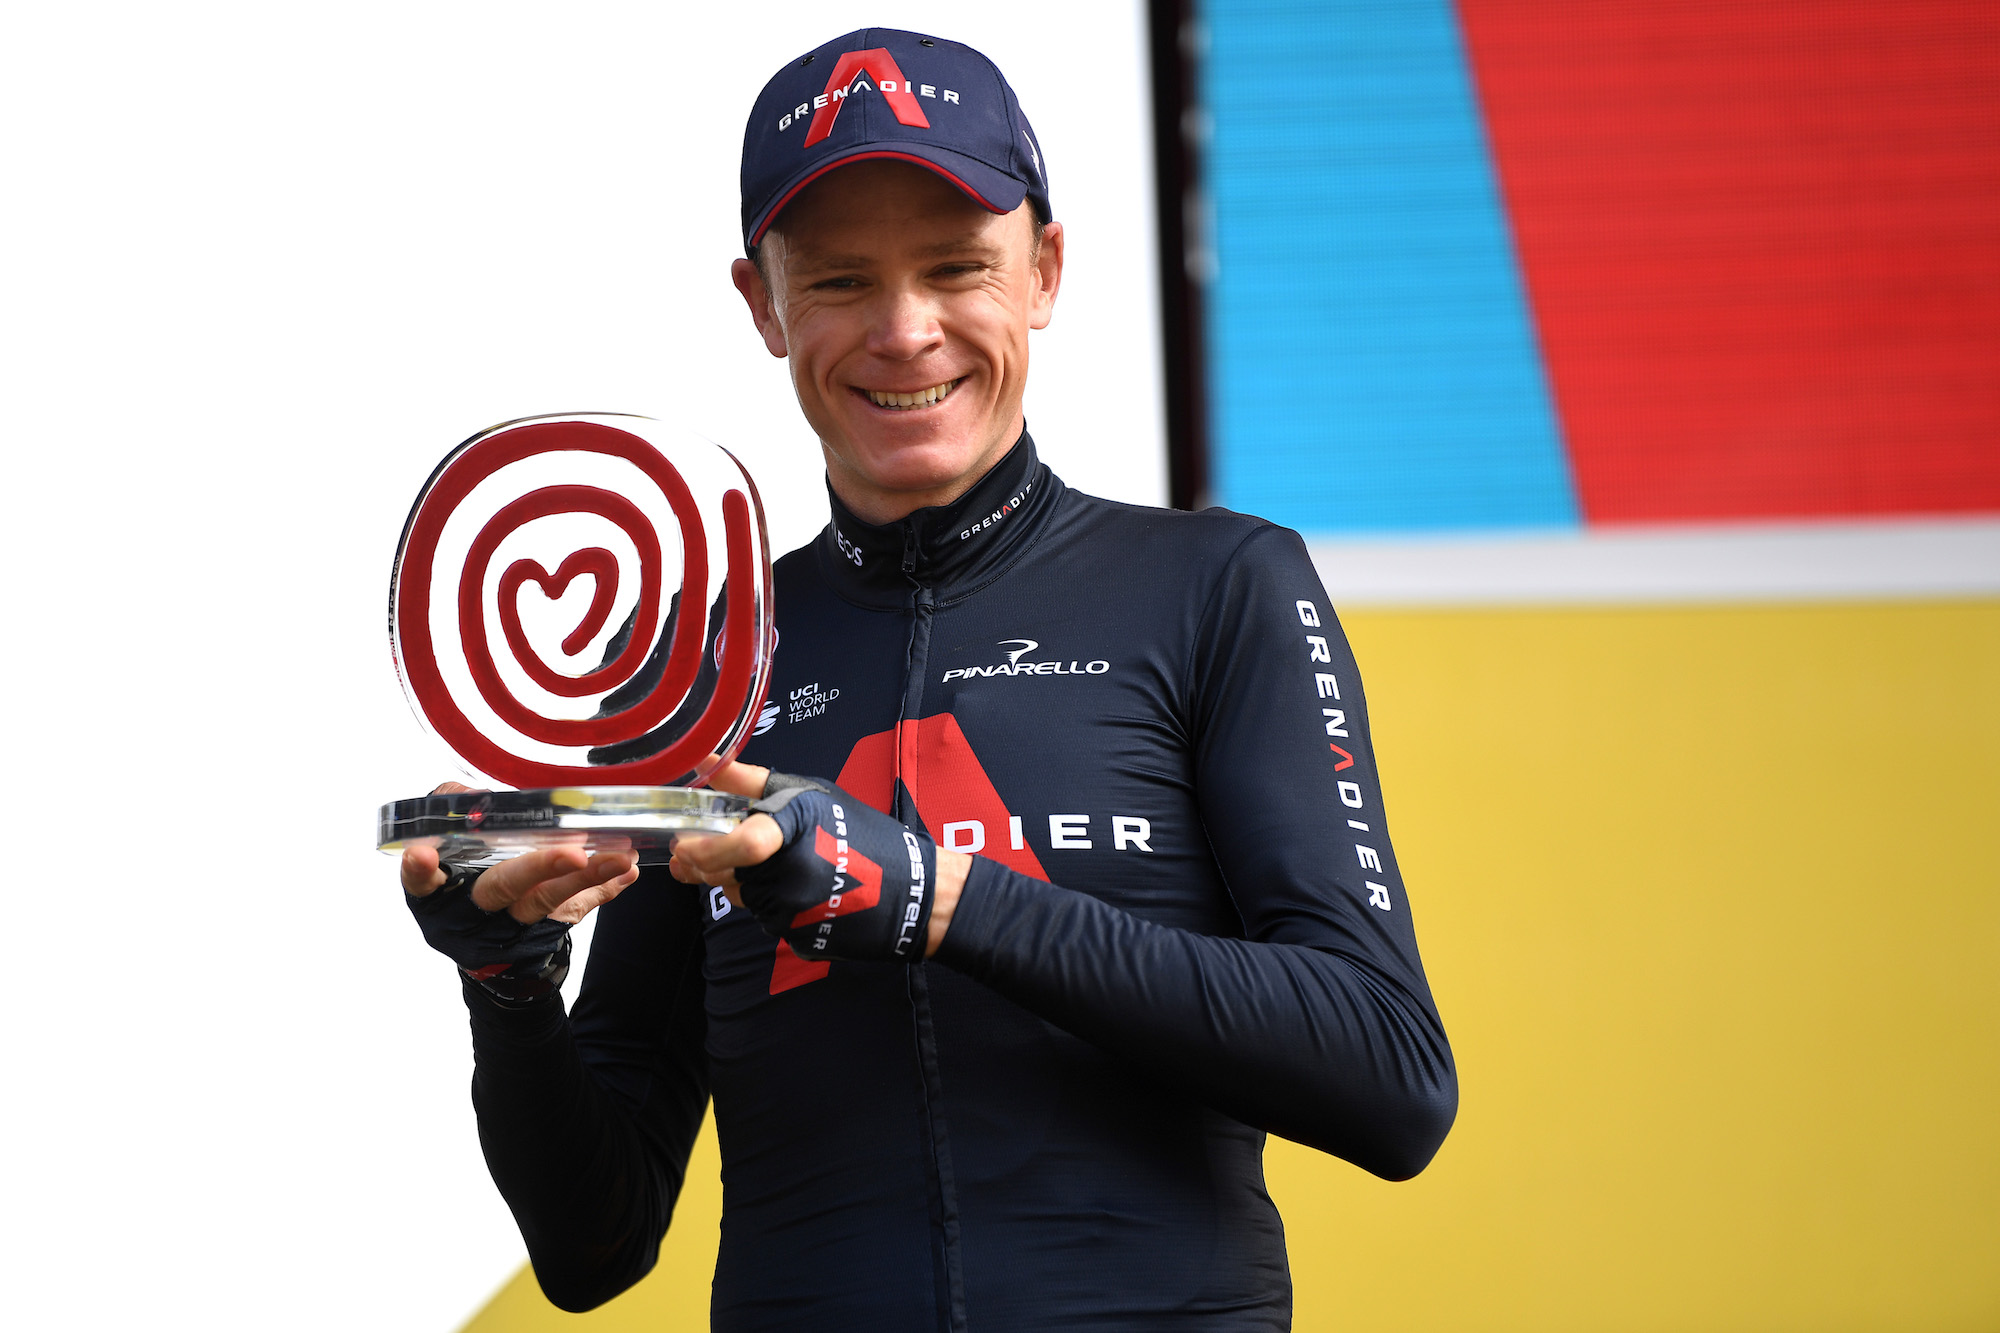 Chris Froome confirms first race with his new team for 2021